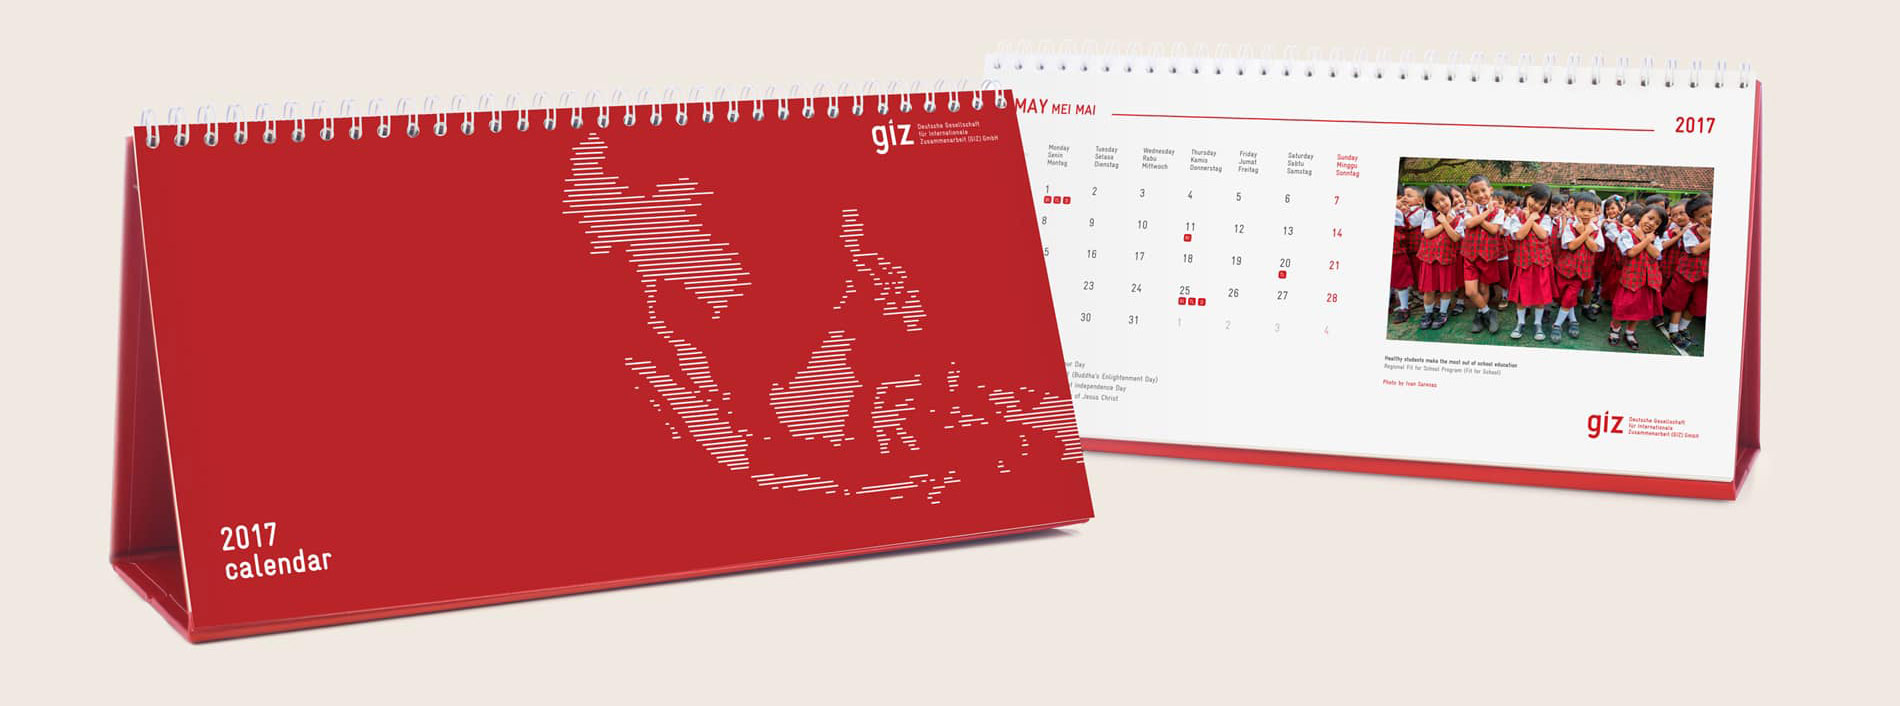 Desain Kalender giz design kalender by Kamarupa Design Group